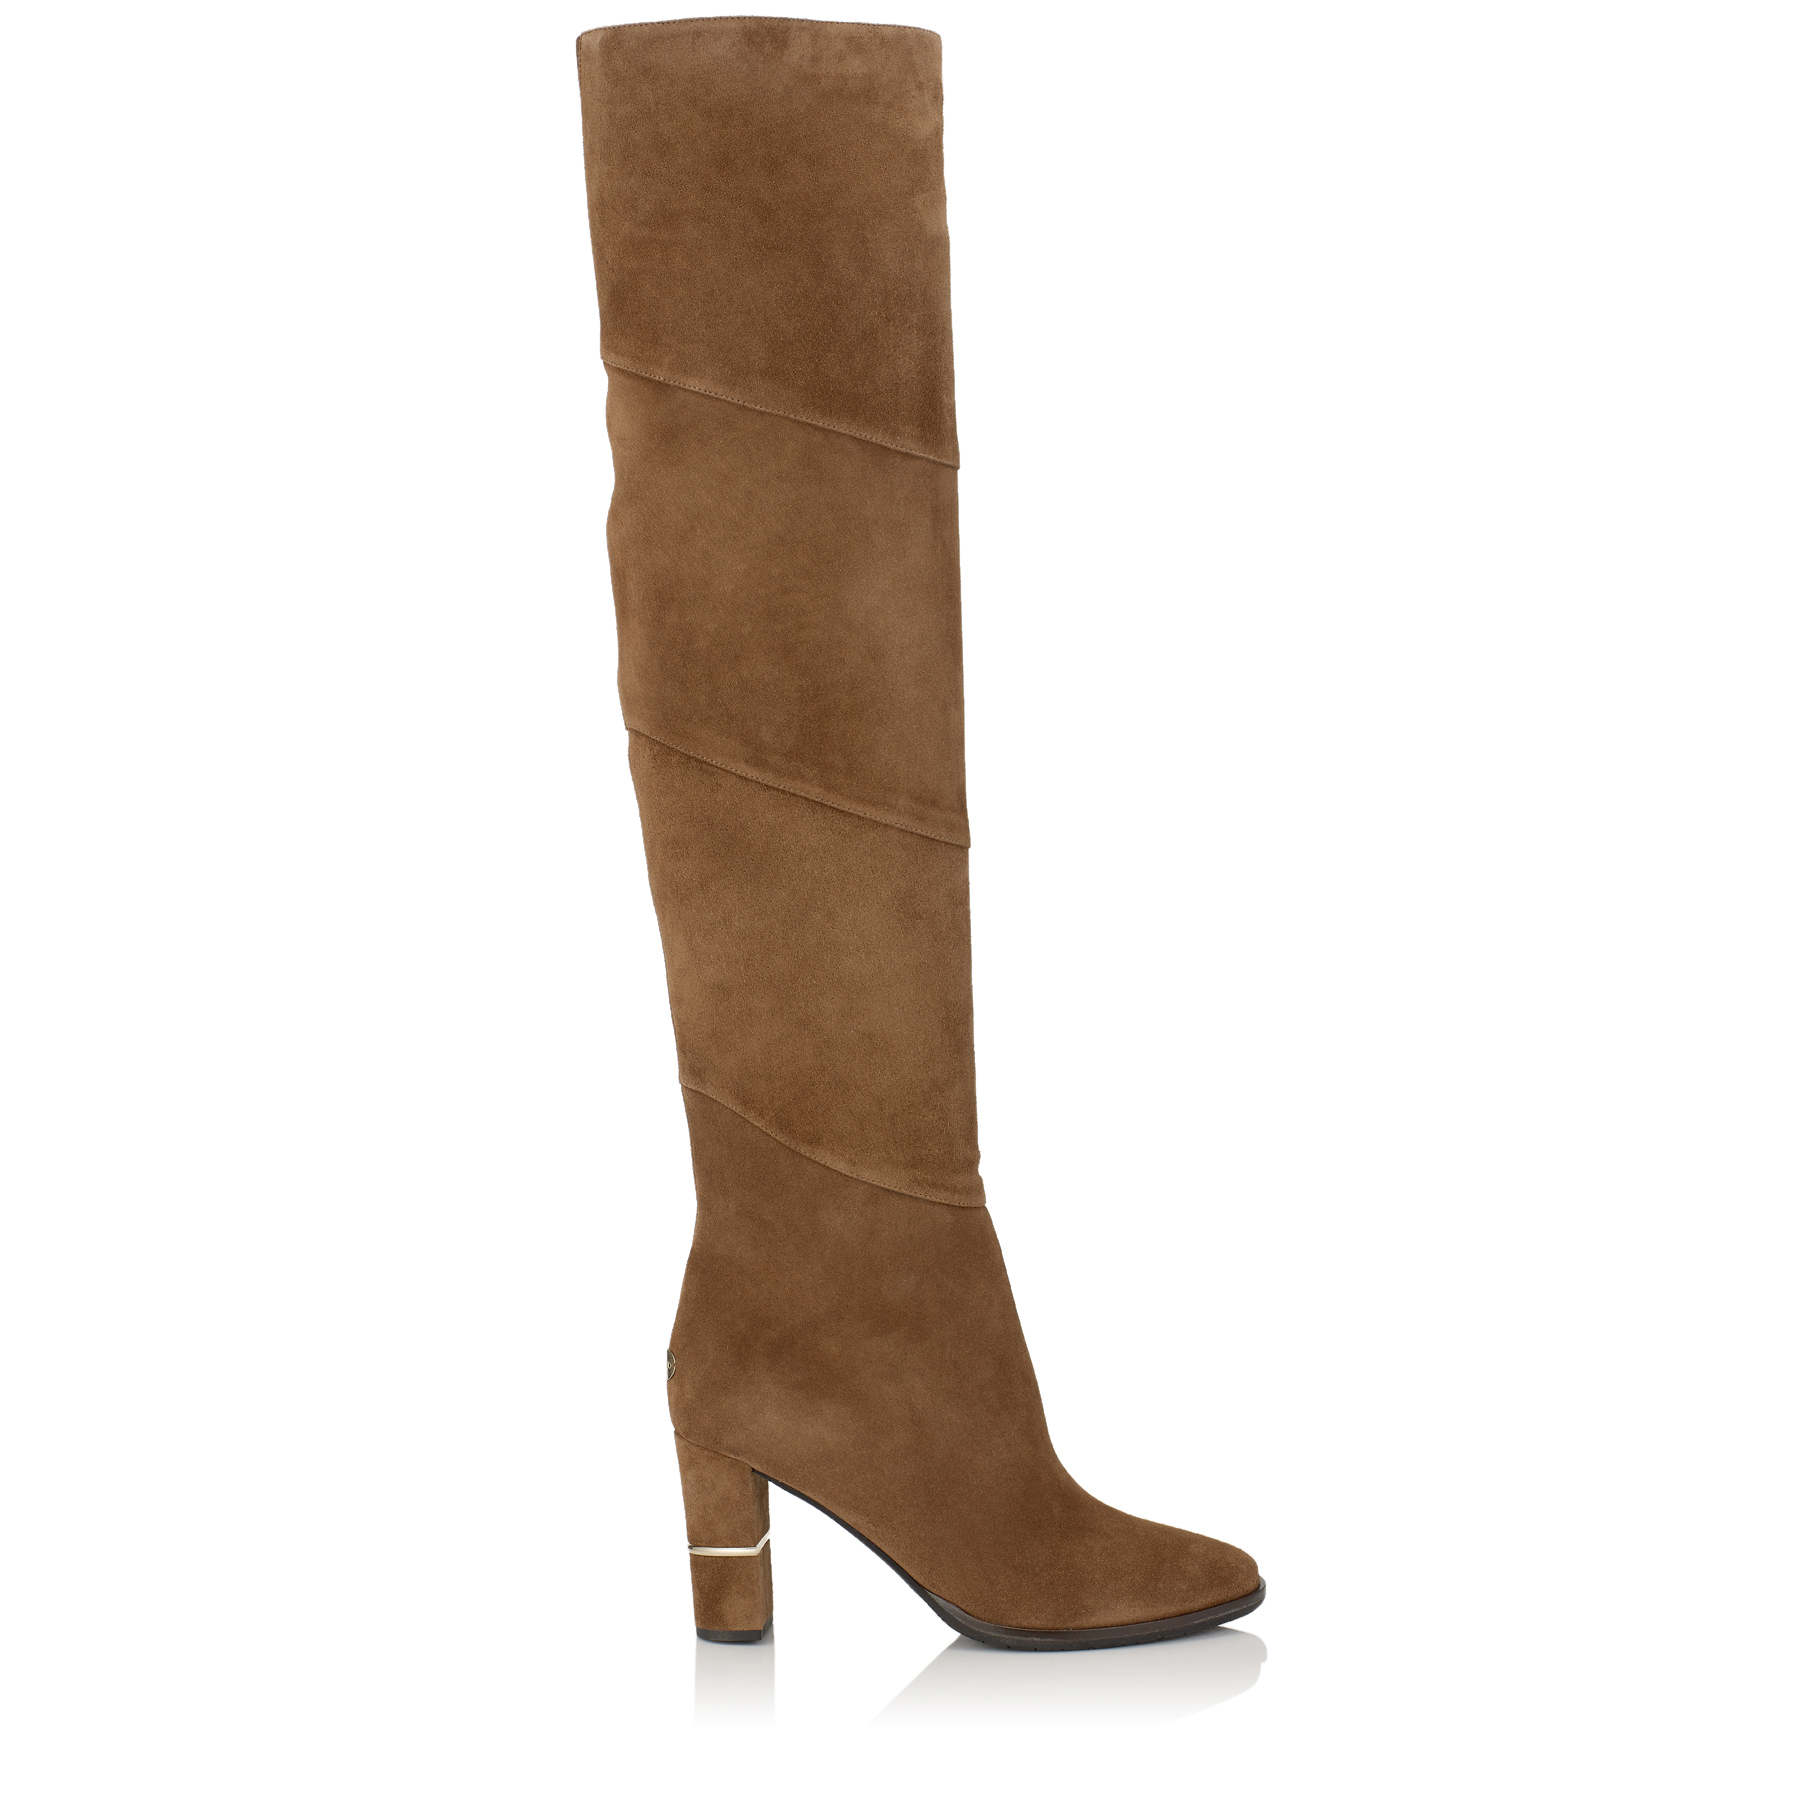 MAIRA 80 Khaki Brown Suede Over-the-Knee Boots